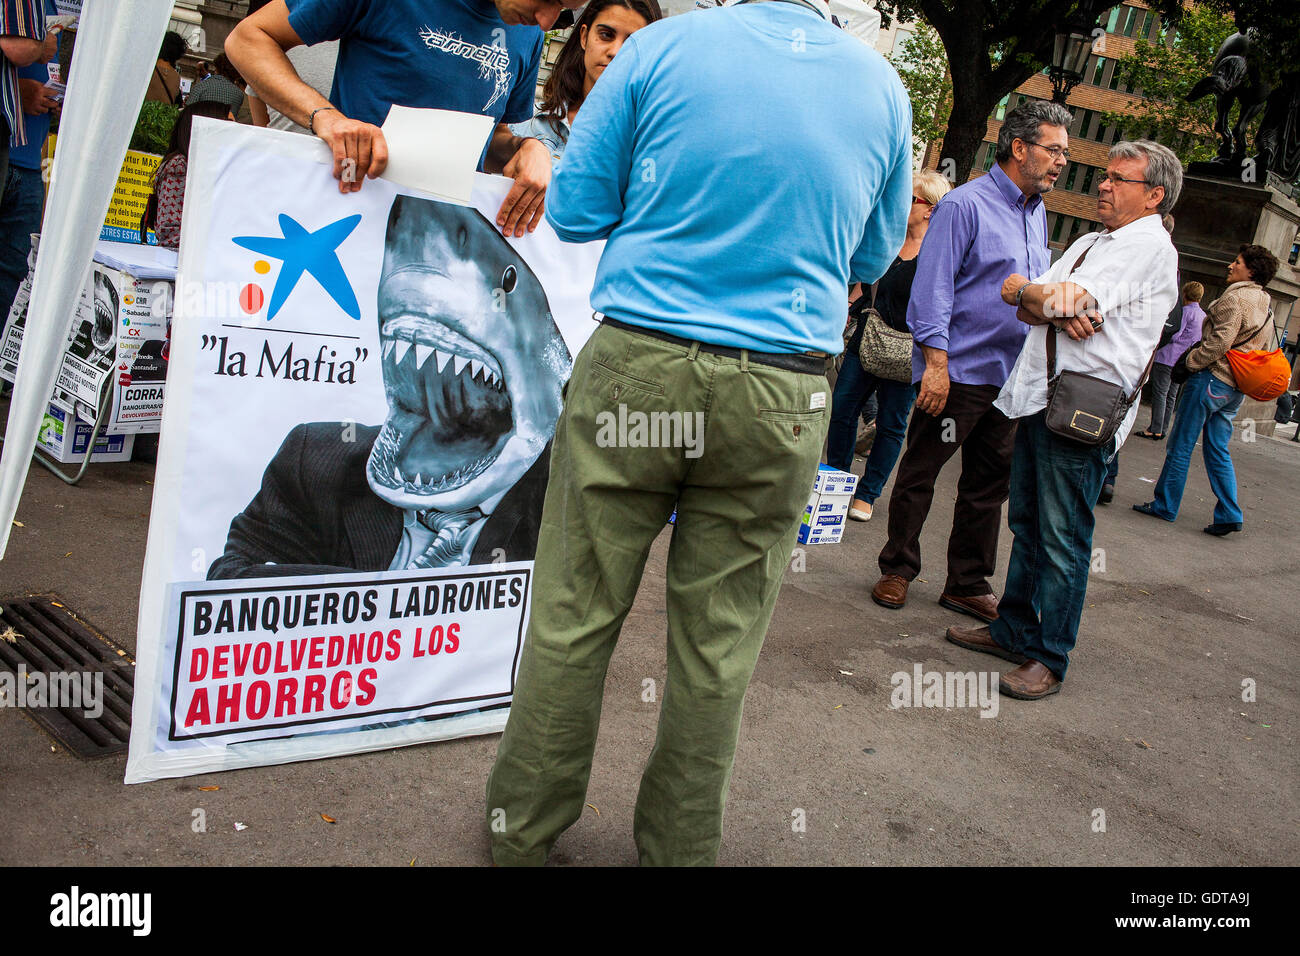 Protester with banner against toxic products of banks.Protests against the depressing social situation.Spanish Revolution - Stock Image